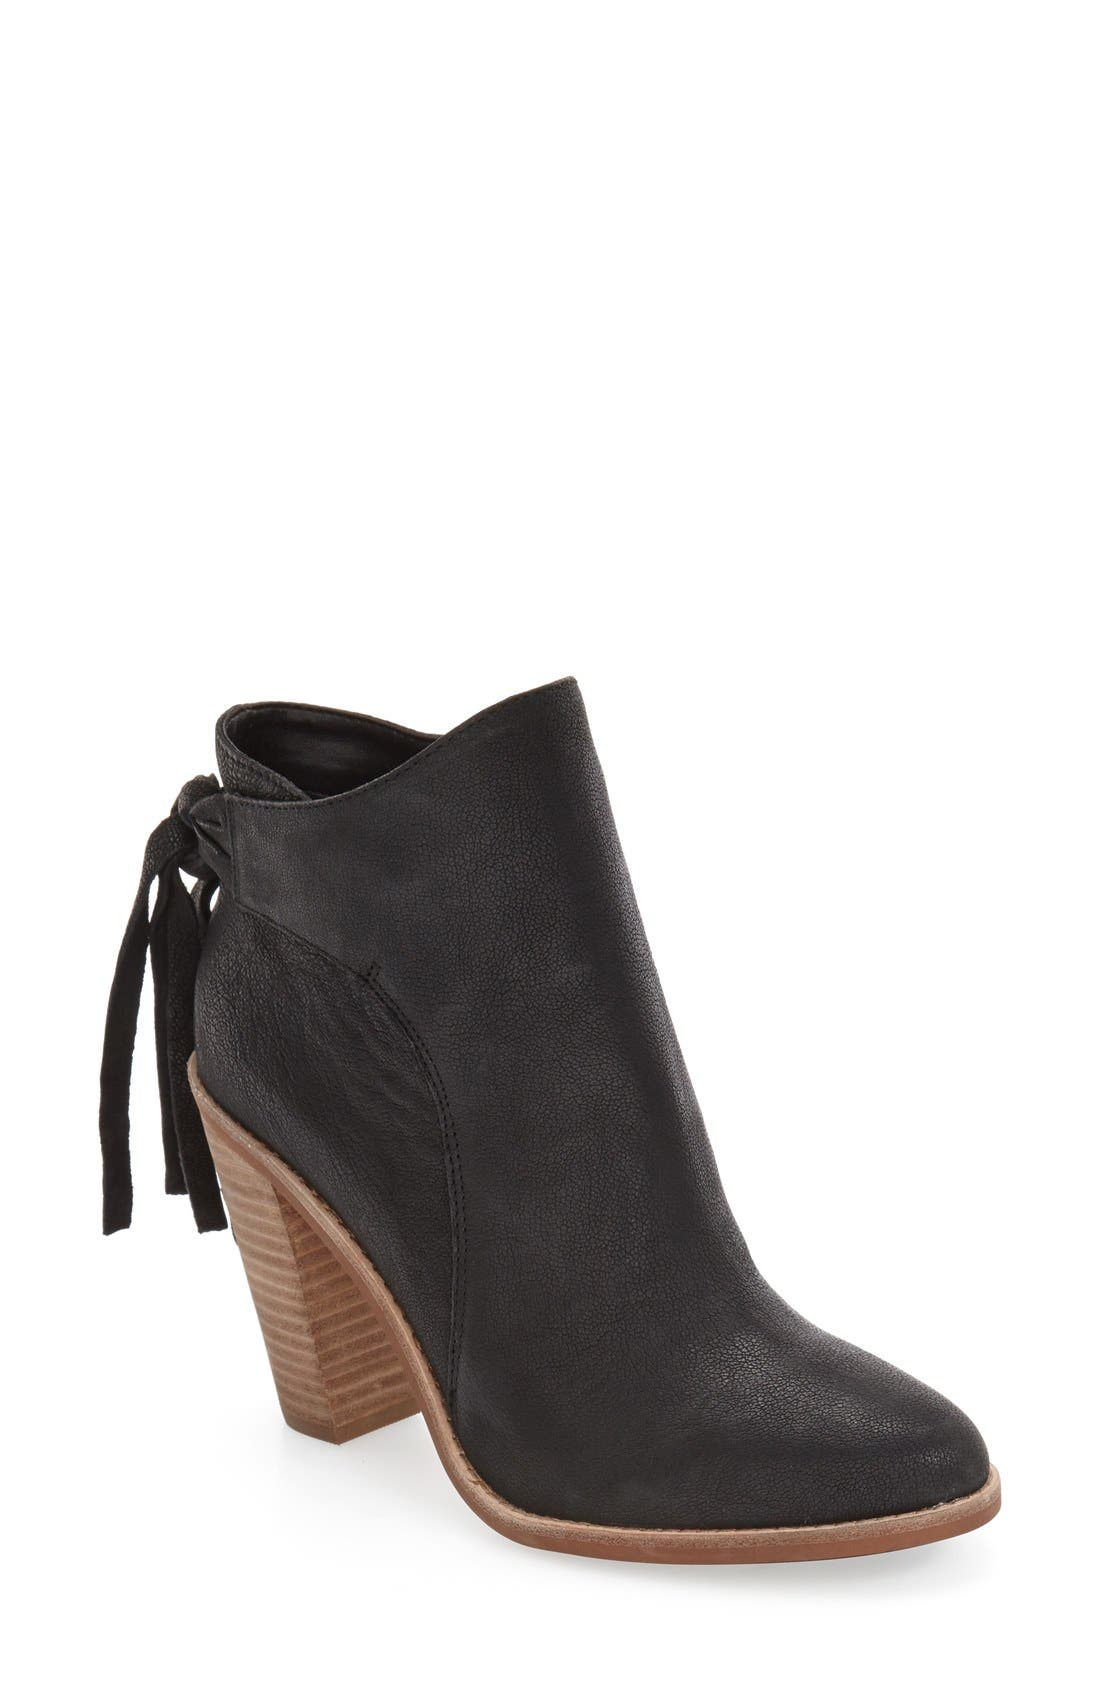 'Linford' Bootie,                         Main,                         color, 001